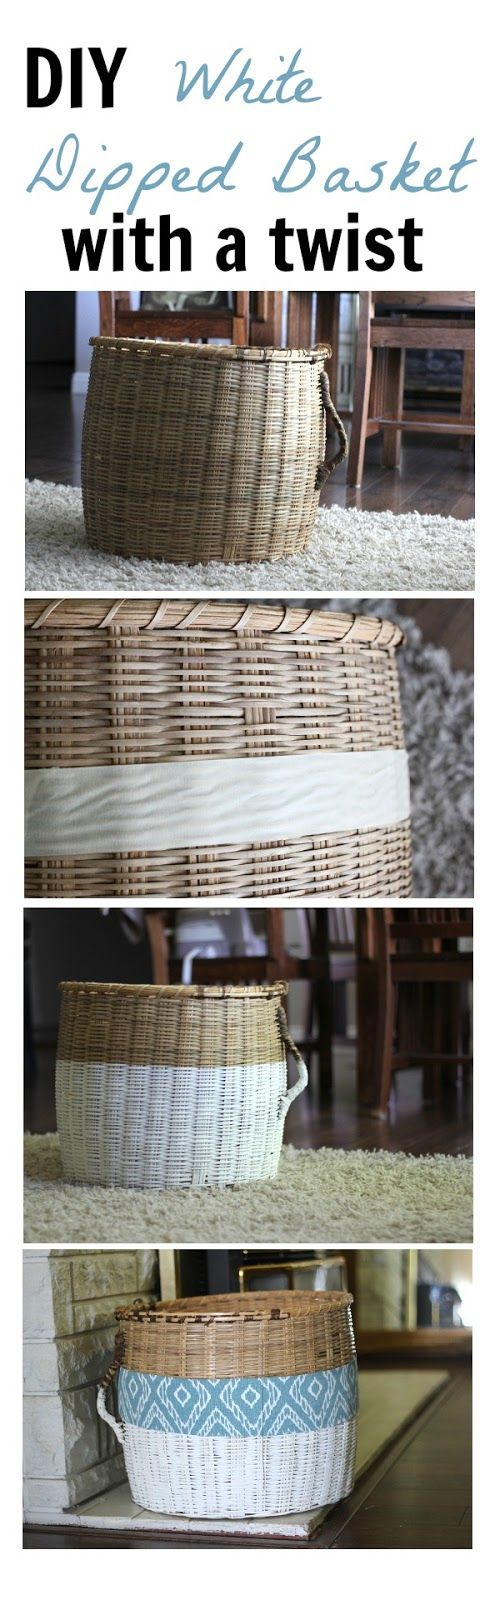 This white dipped basket has been a great addition for blanket storage in our living room.  I added a fun accent piece that is not only easy to make but can be changed throughout the year for different seasons or holidays!!: